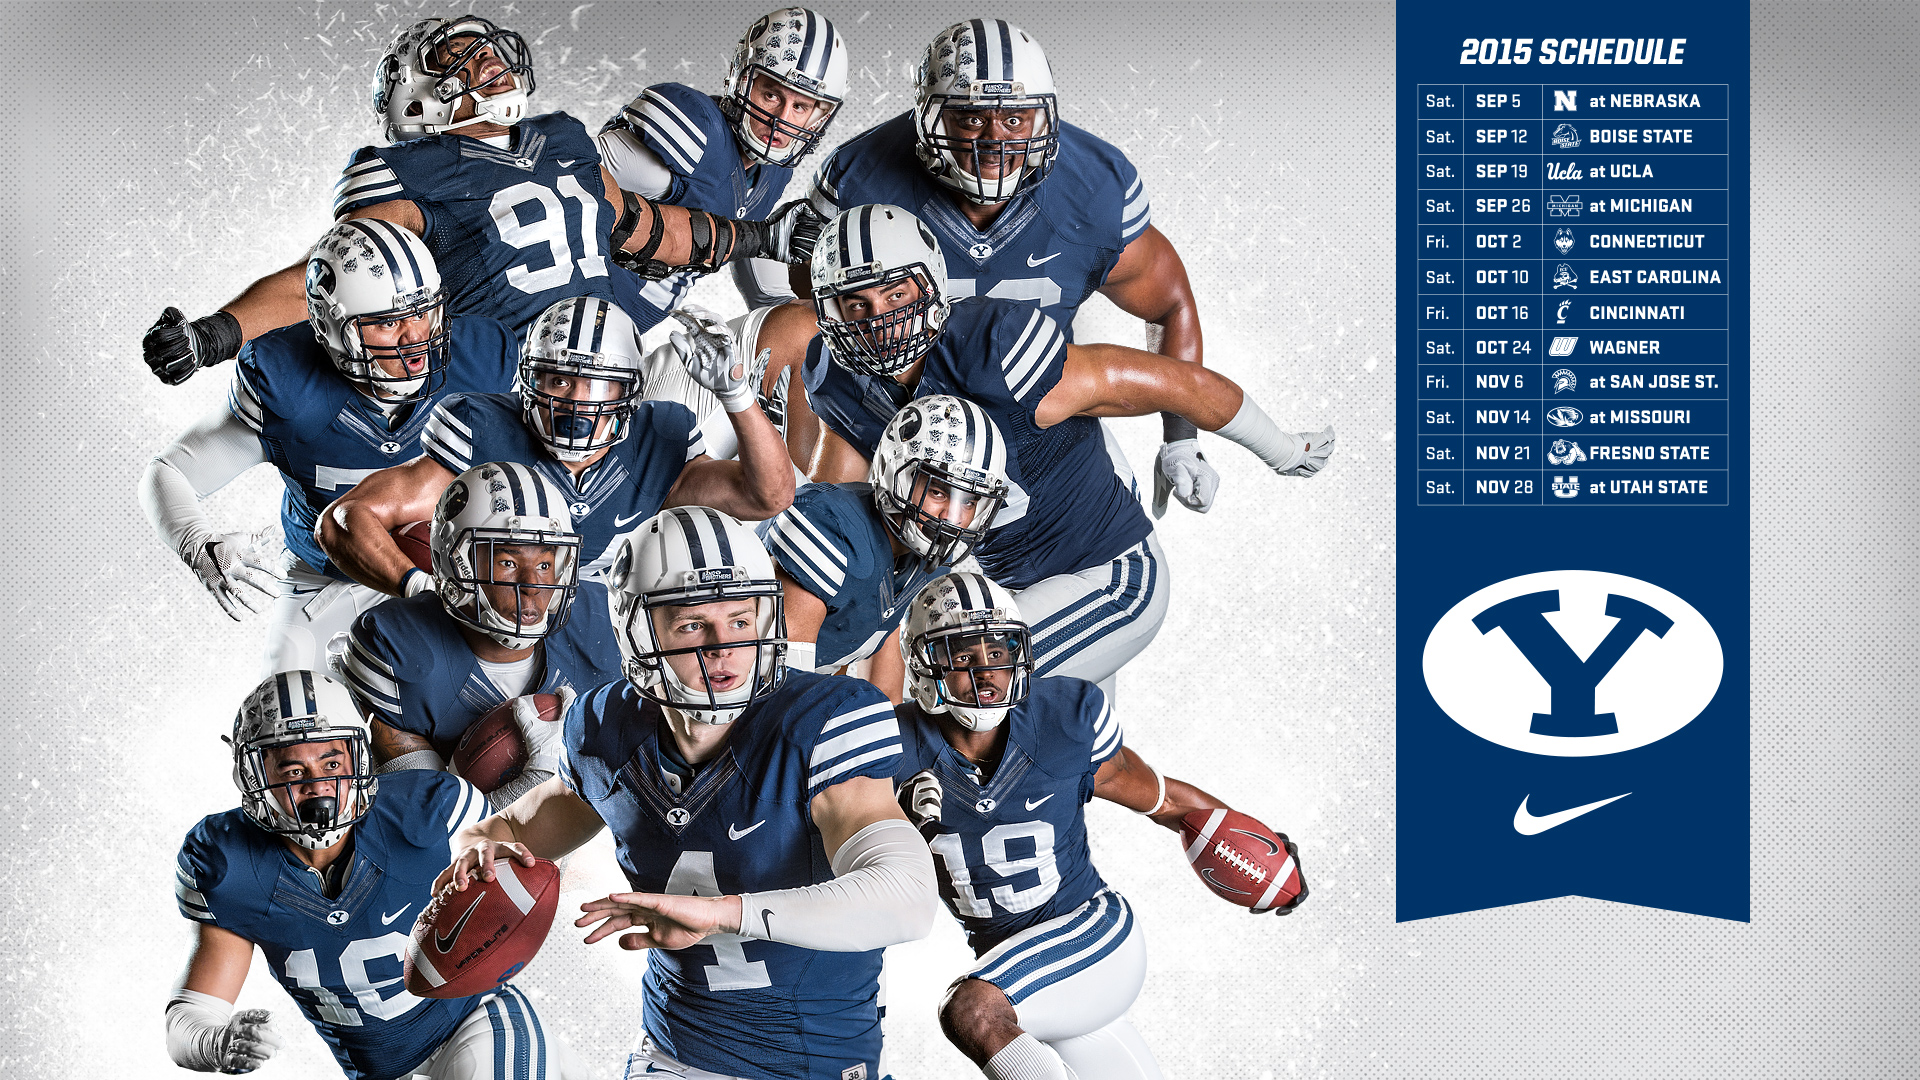 2015 Byu Football Schedule Background - WallpaperSafari